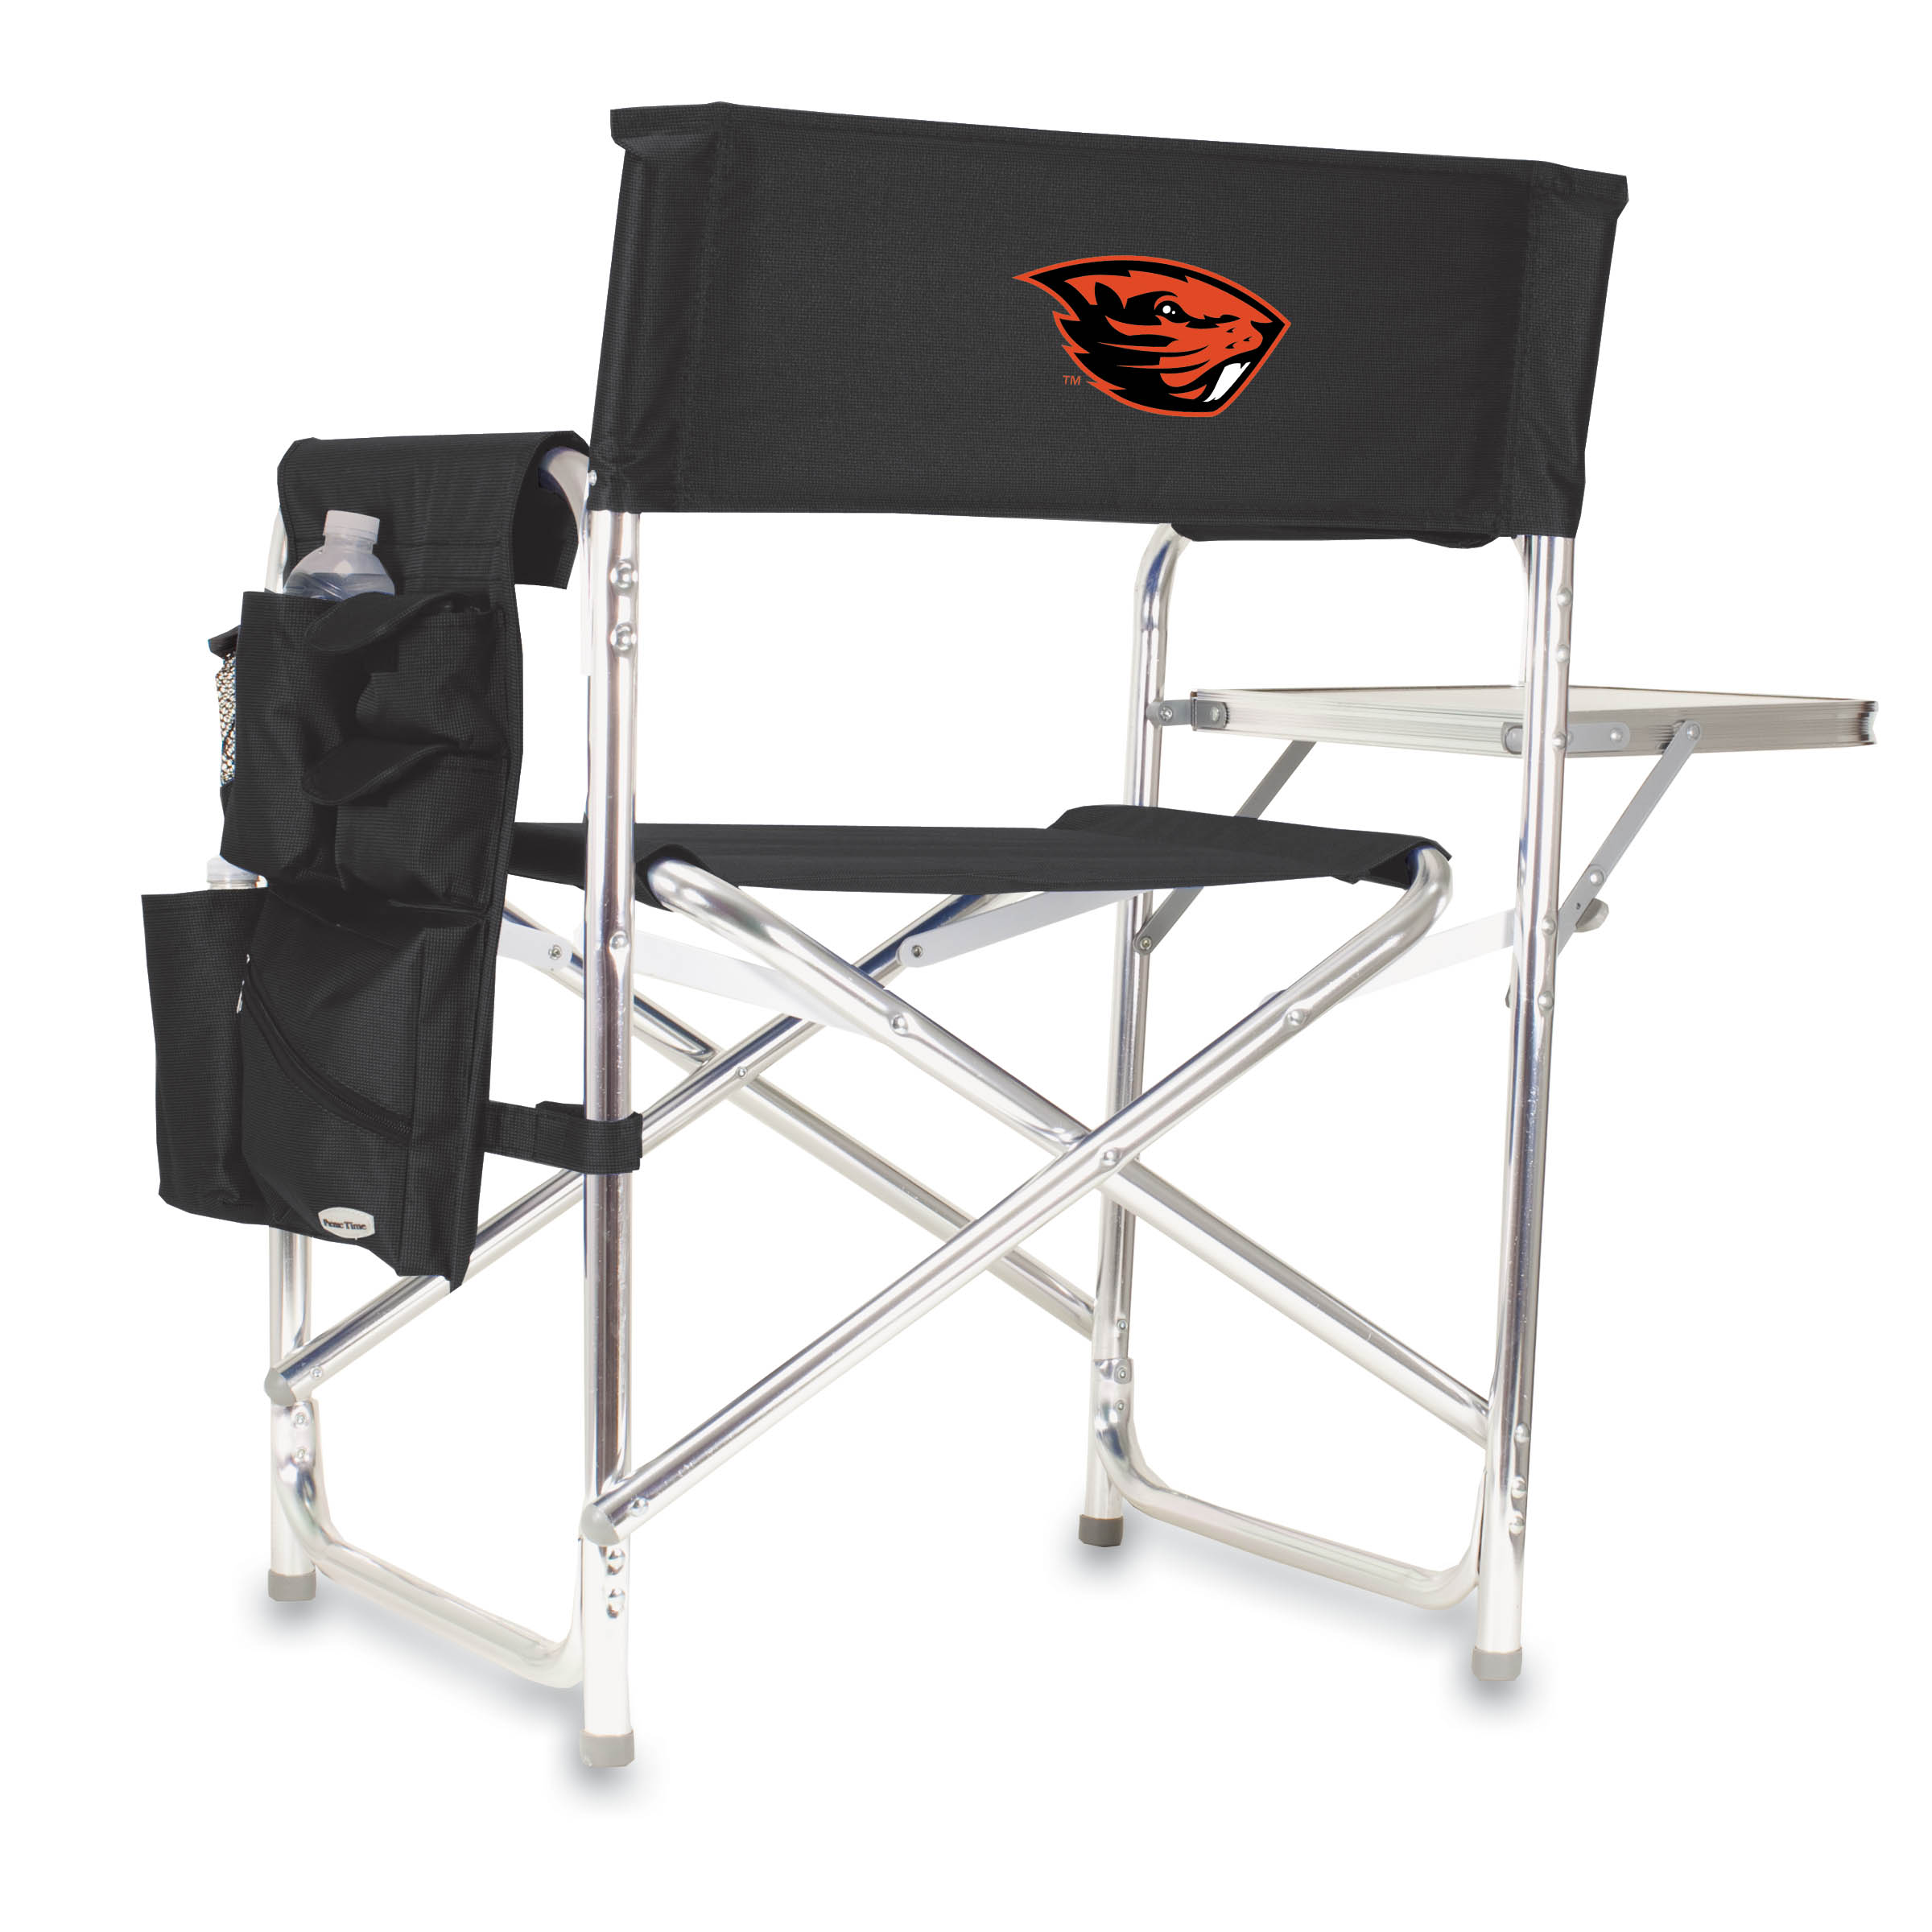 Picnic Time Sports Chair Sports Chair Black Oregon State Beavers Embroidered